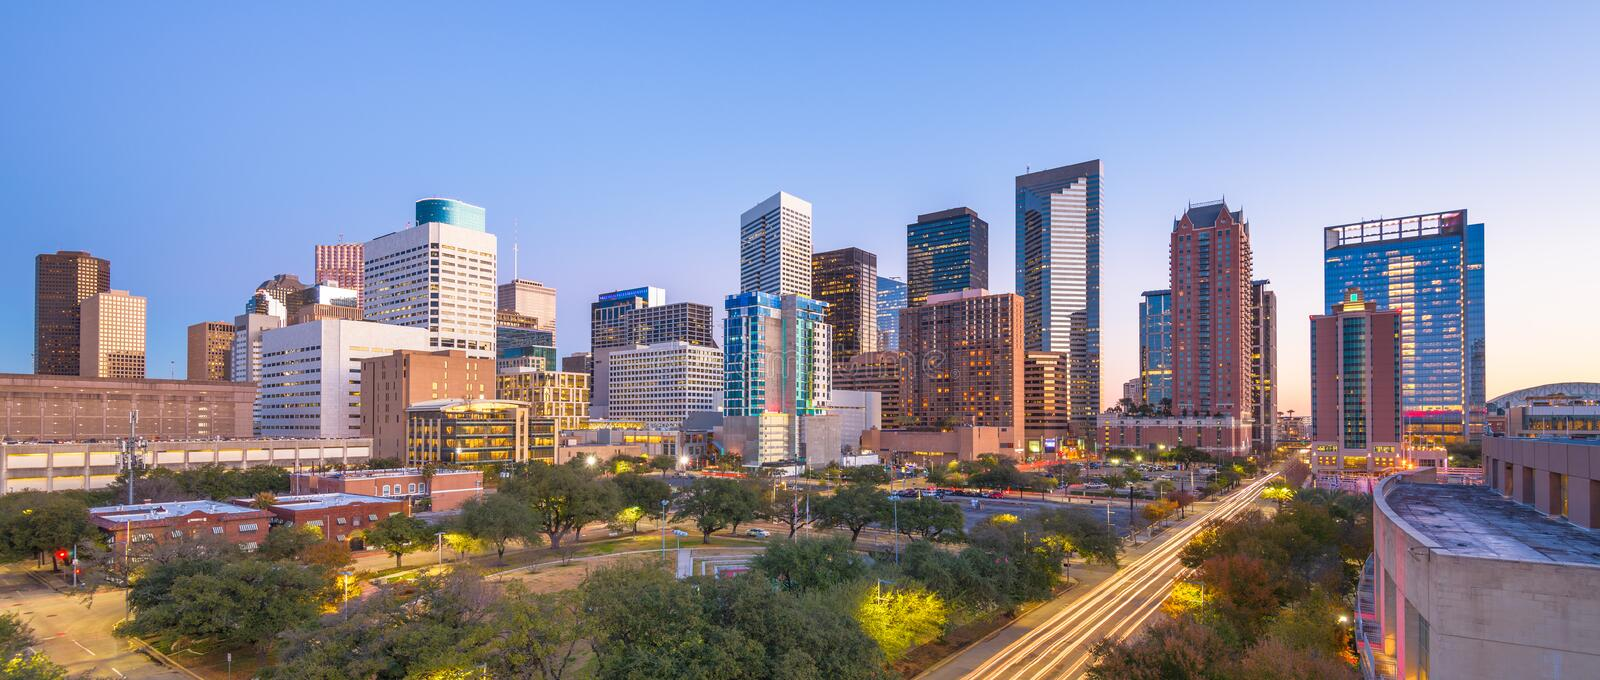 Houston, Texas, USA downtown park and skyline. At twilight royalty free stock photos